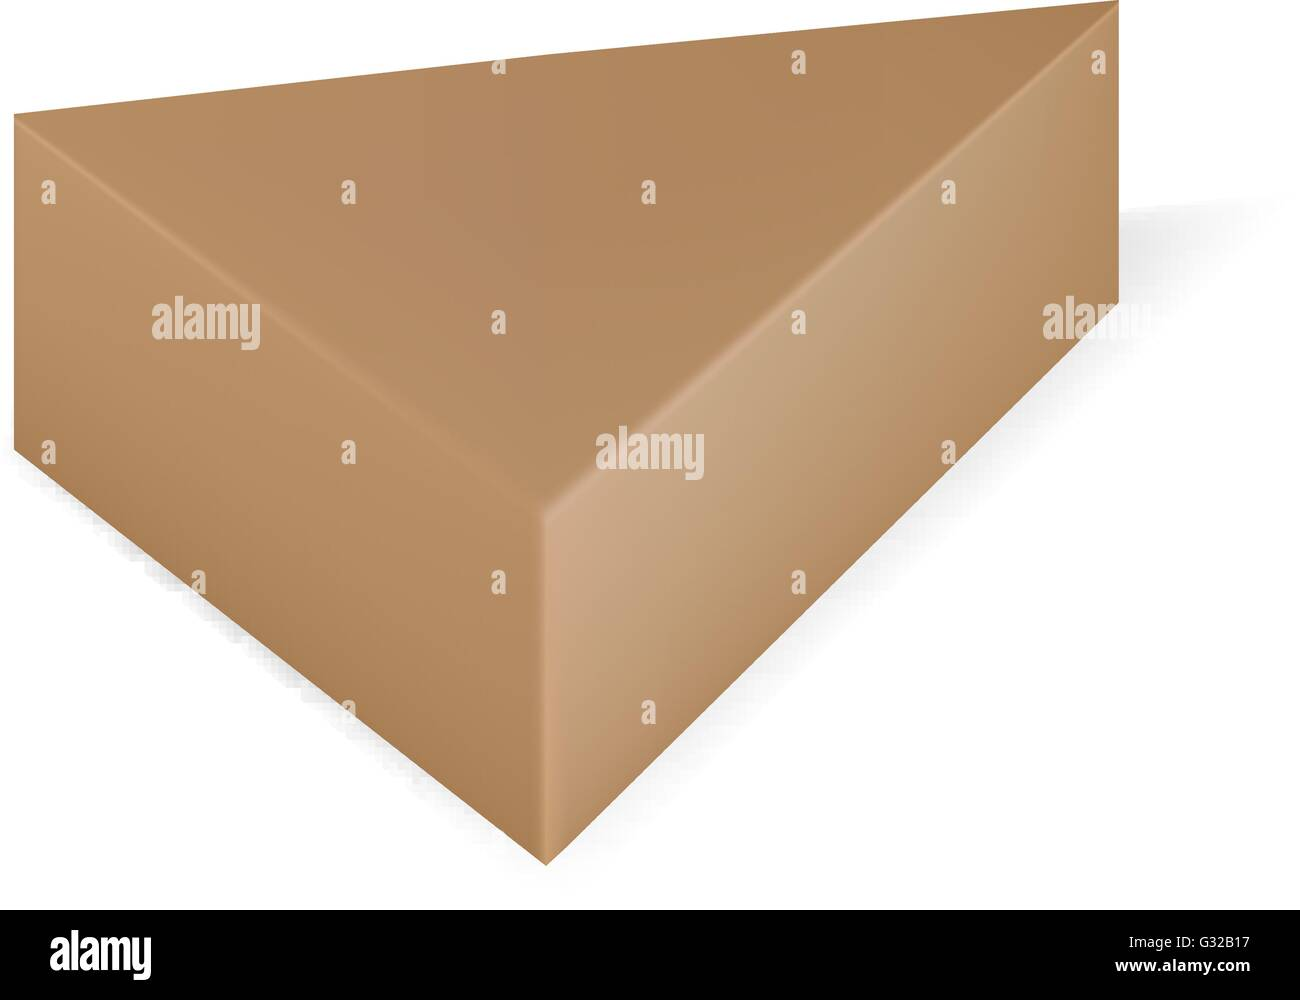 VECTOR PACKAGING Brown Triangle Packaging Box On Isolated White Background Mock Up Template Ready For Design